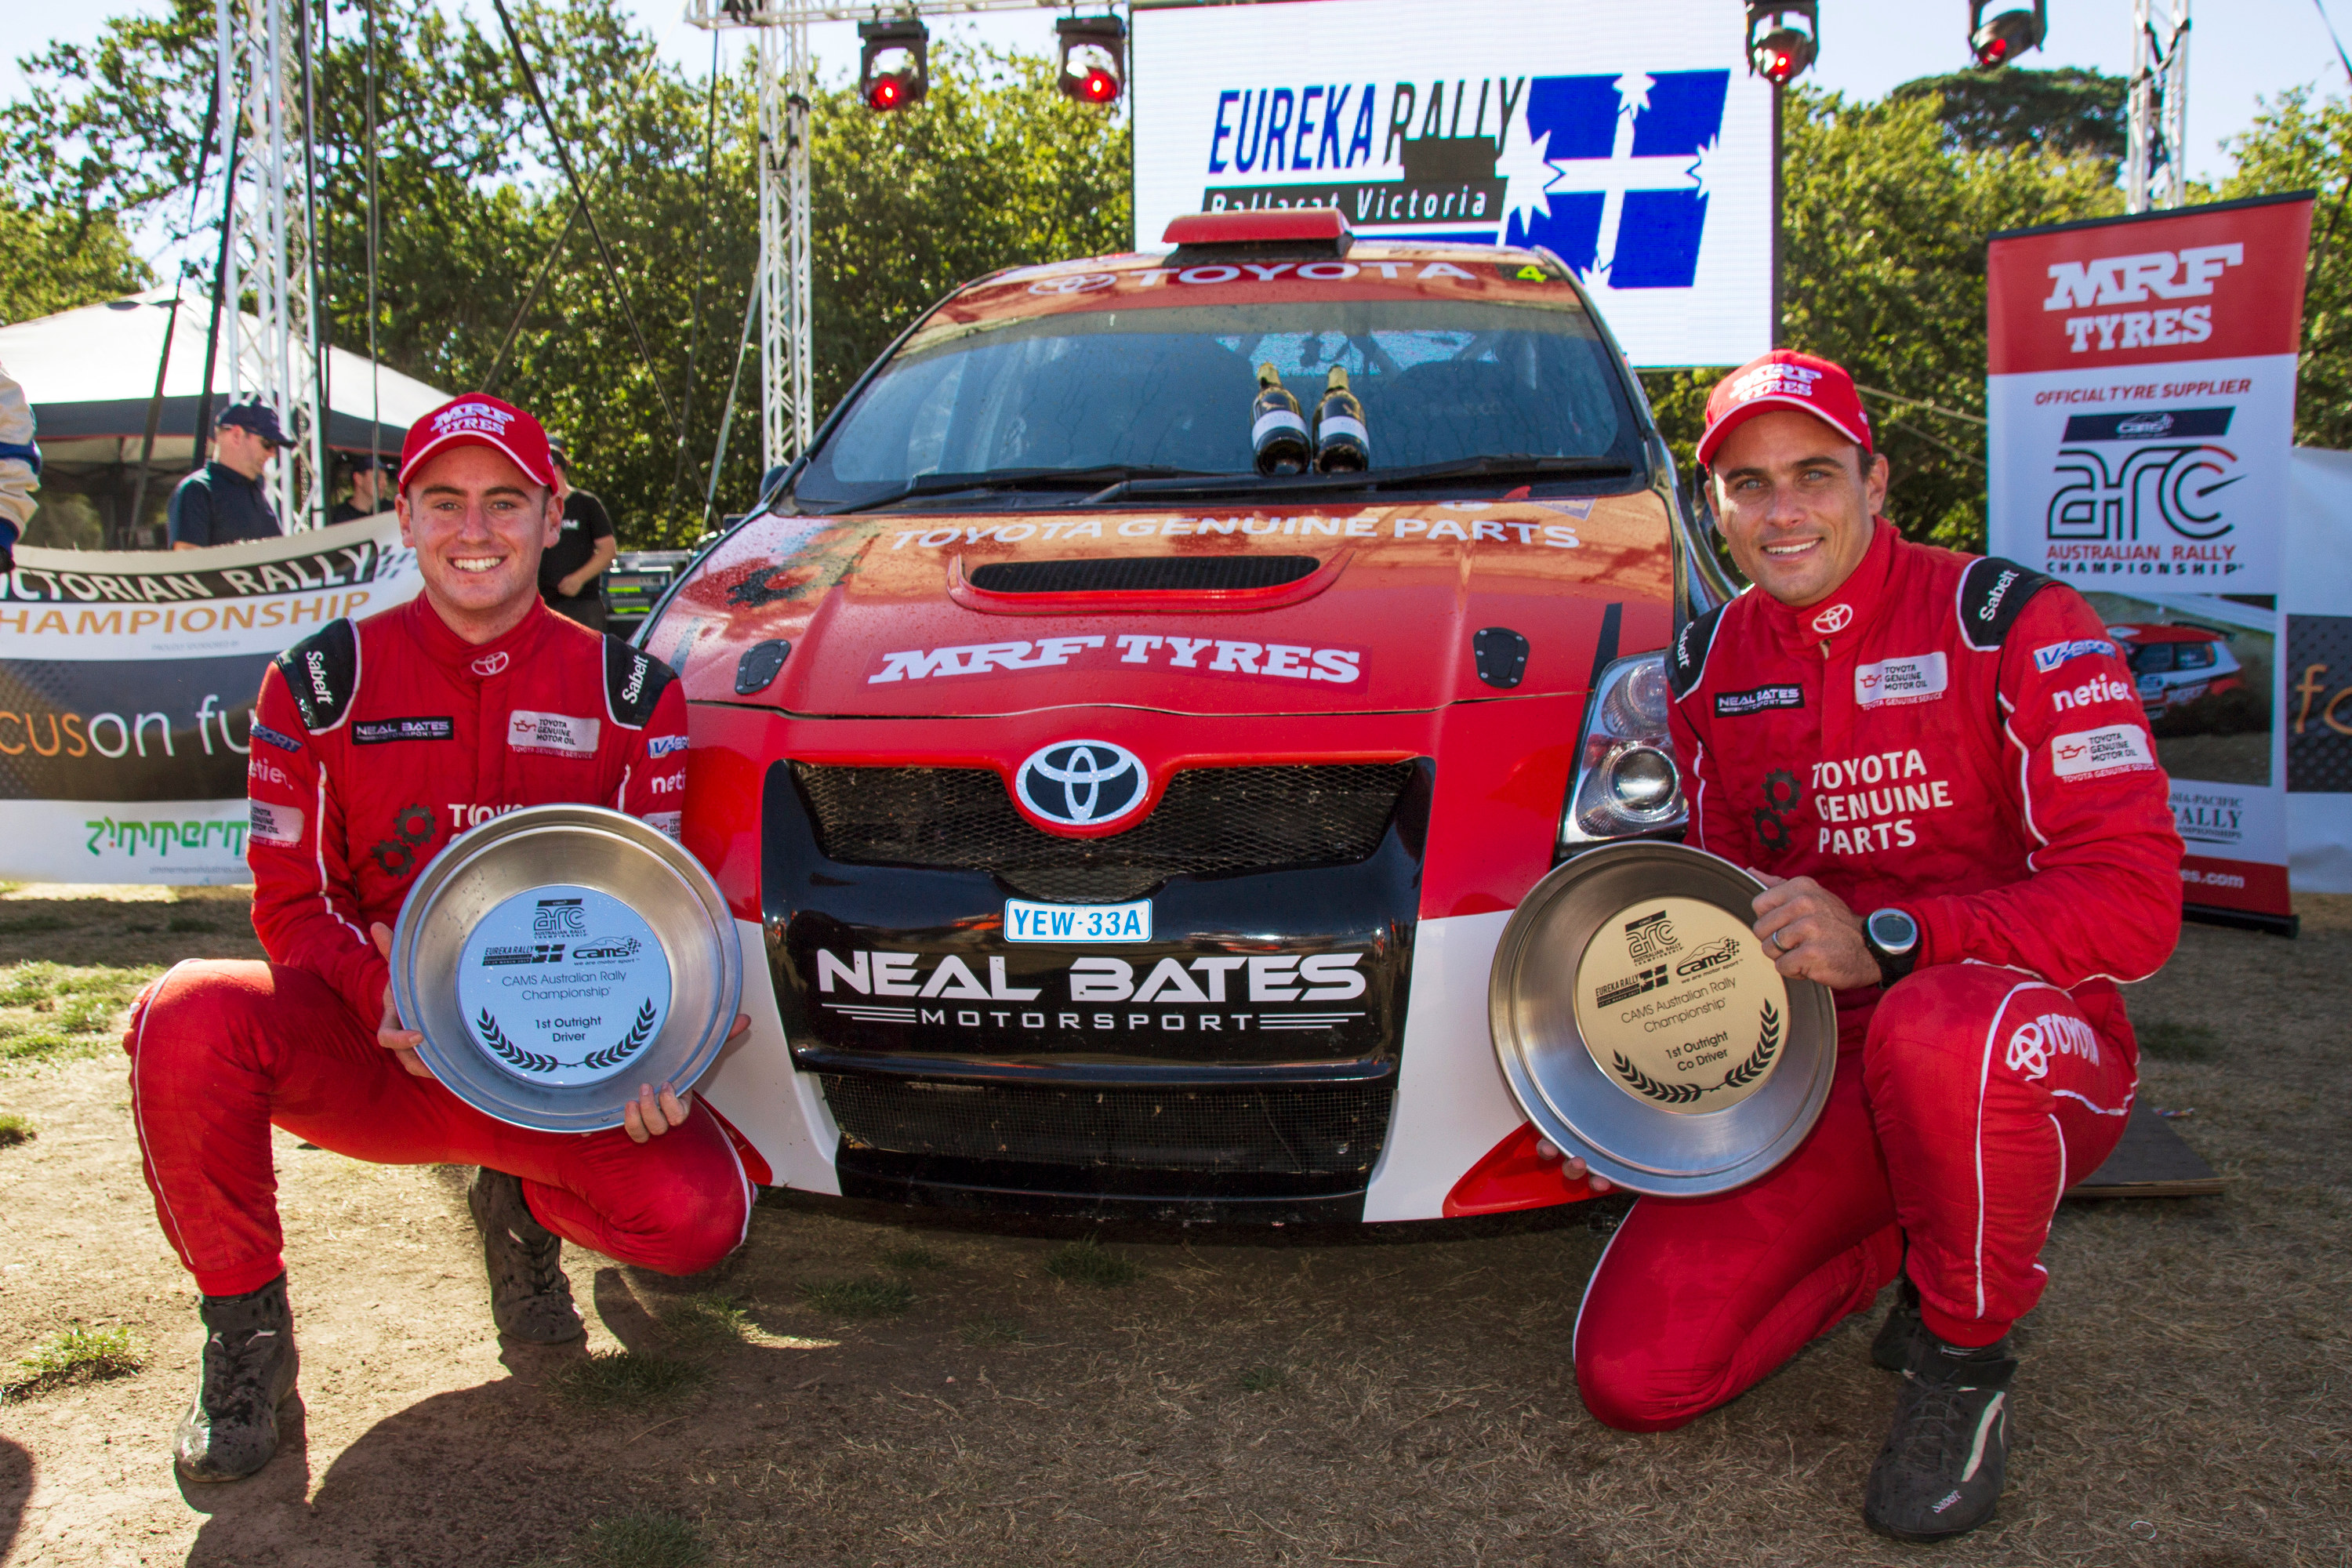 Harry Bates (left) and co-driver John McCarthy celebrate victory at the season-opening Eureka Rally.